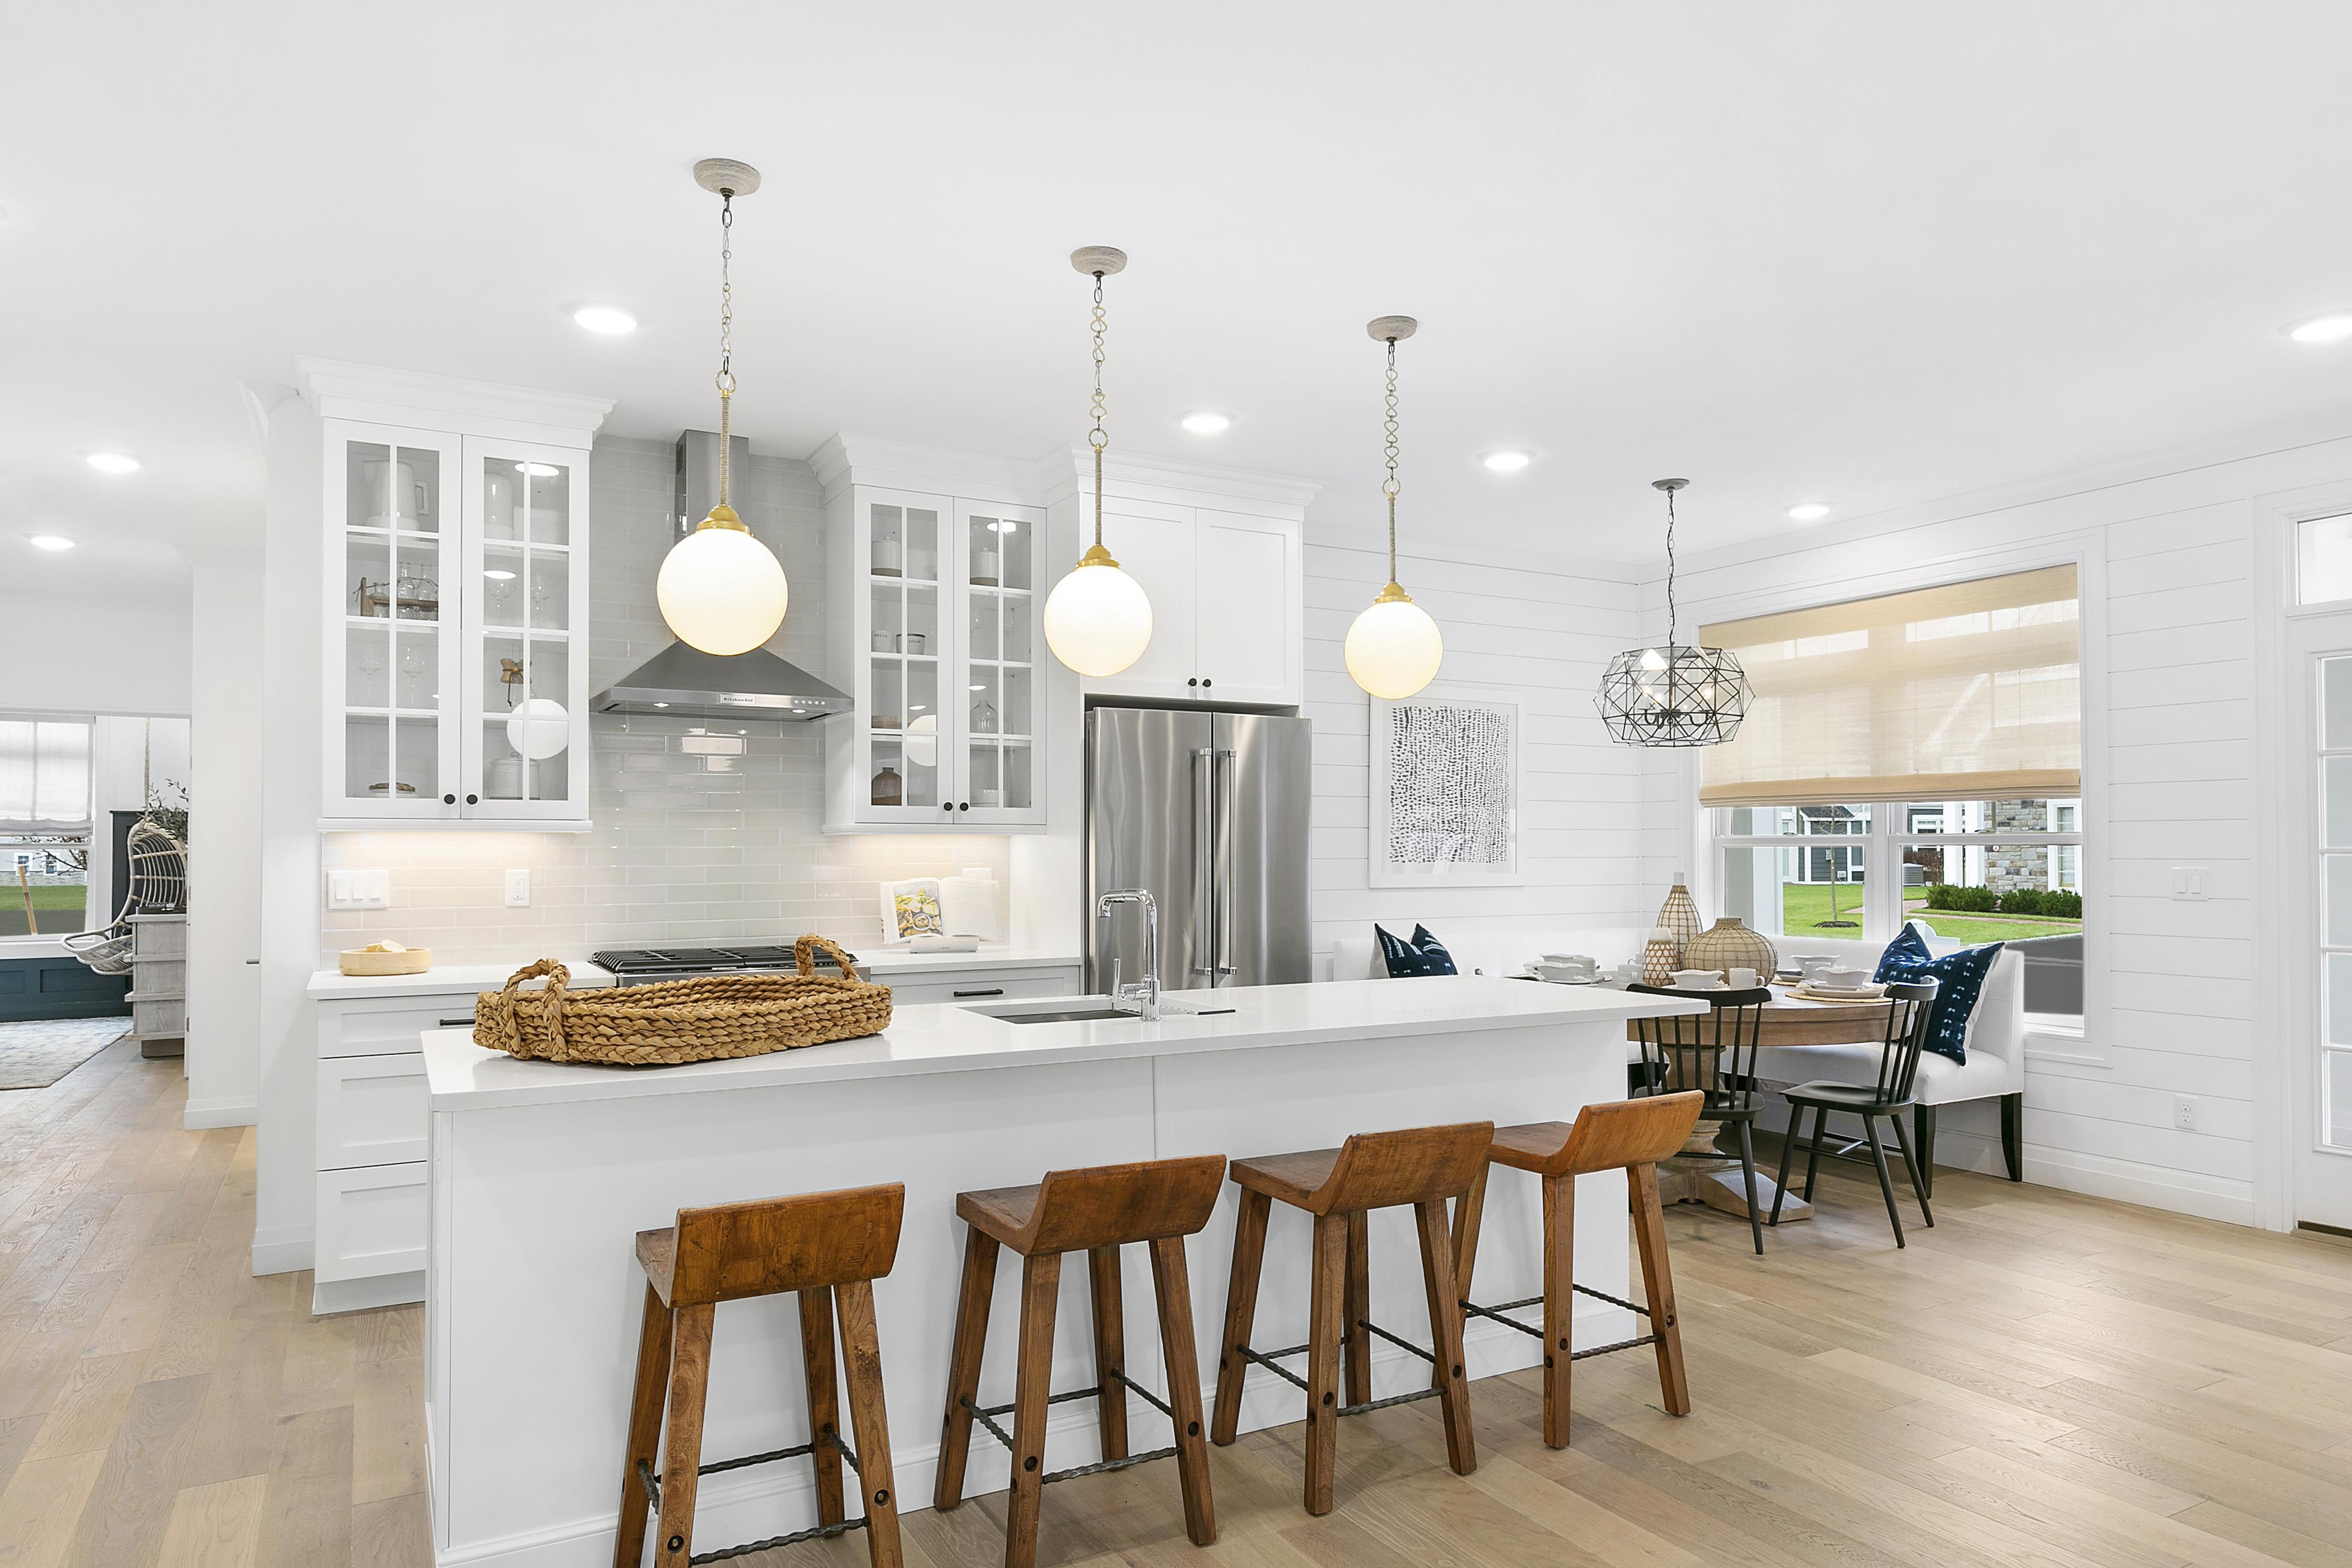 Kitchen featured in The Fairfax By Beechwood Homes in Nassau-Suffolk, NY